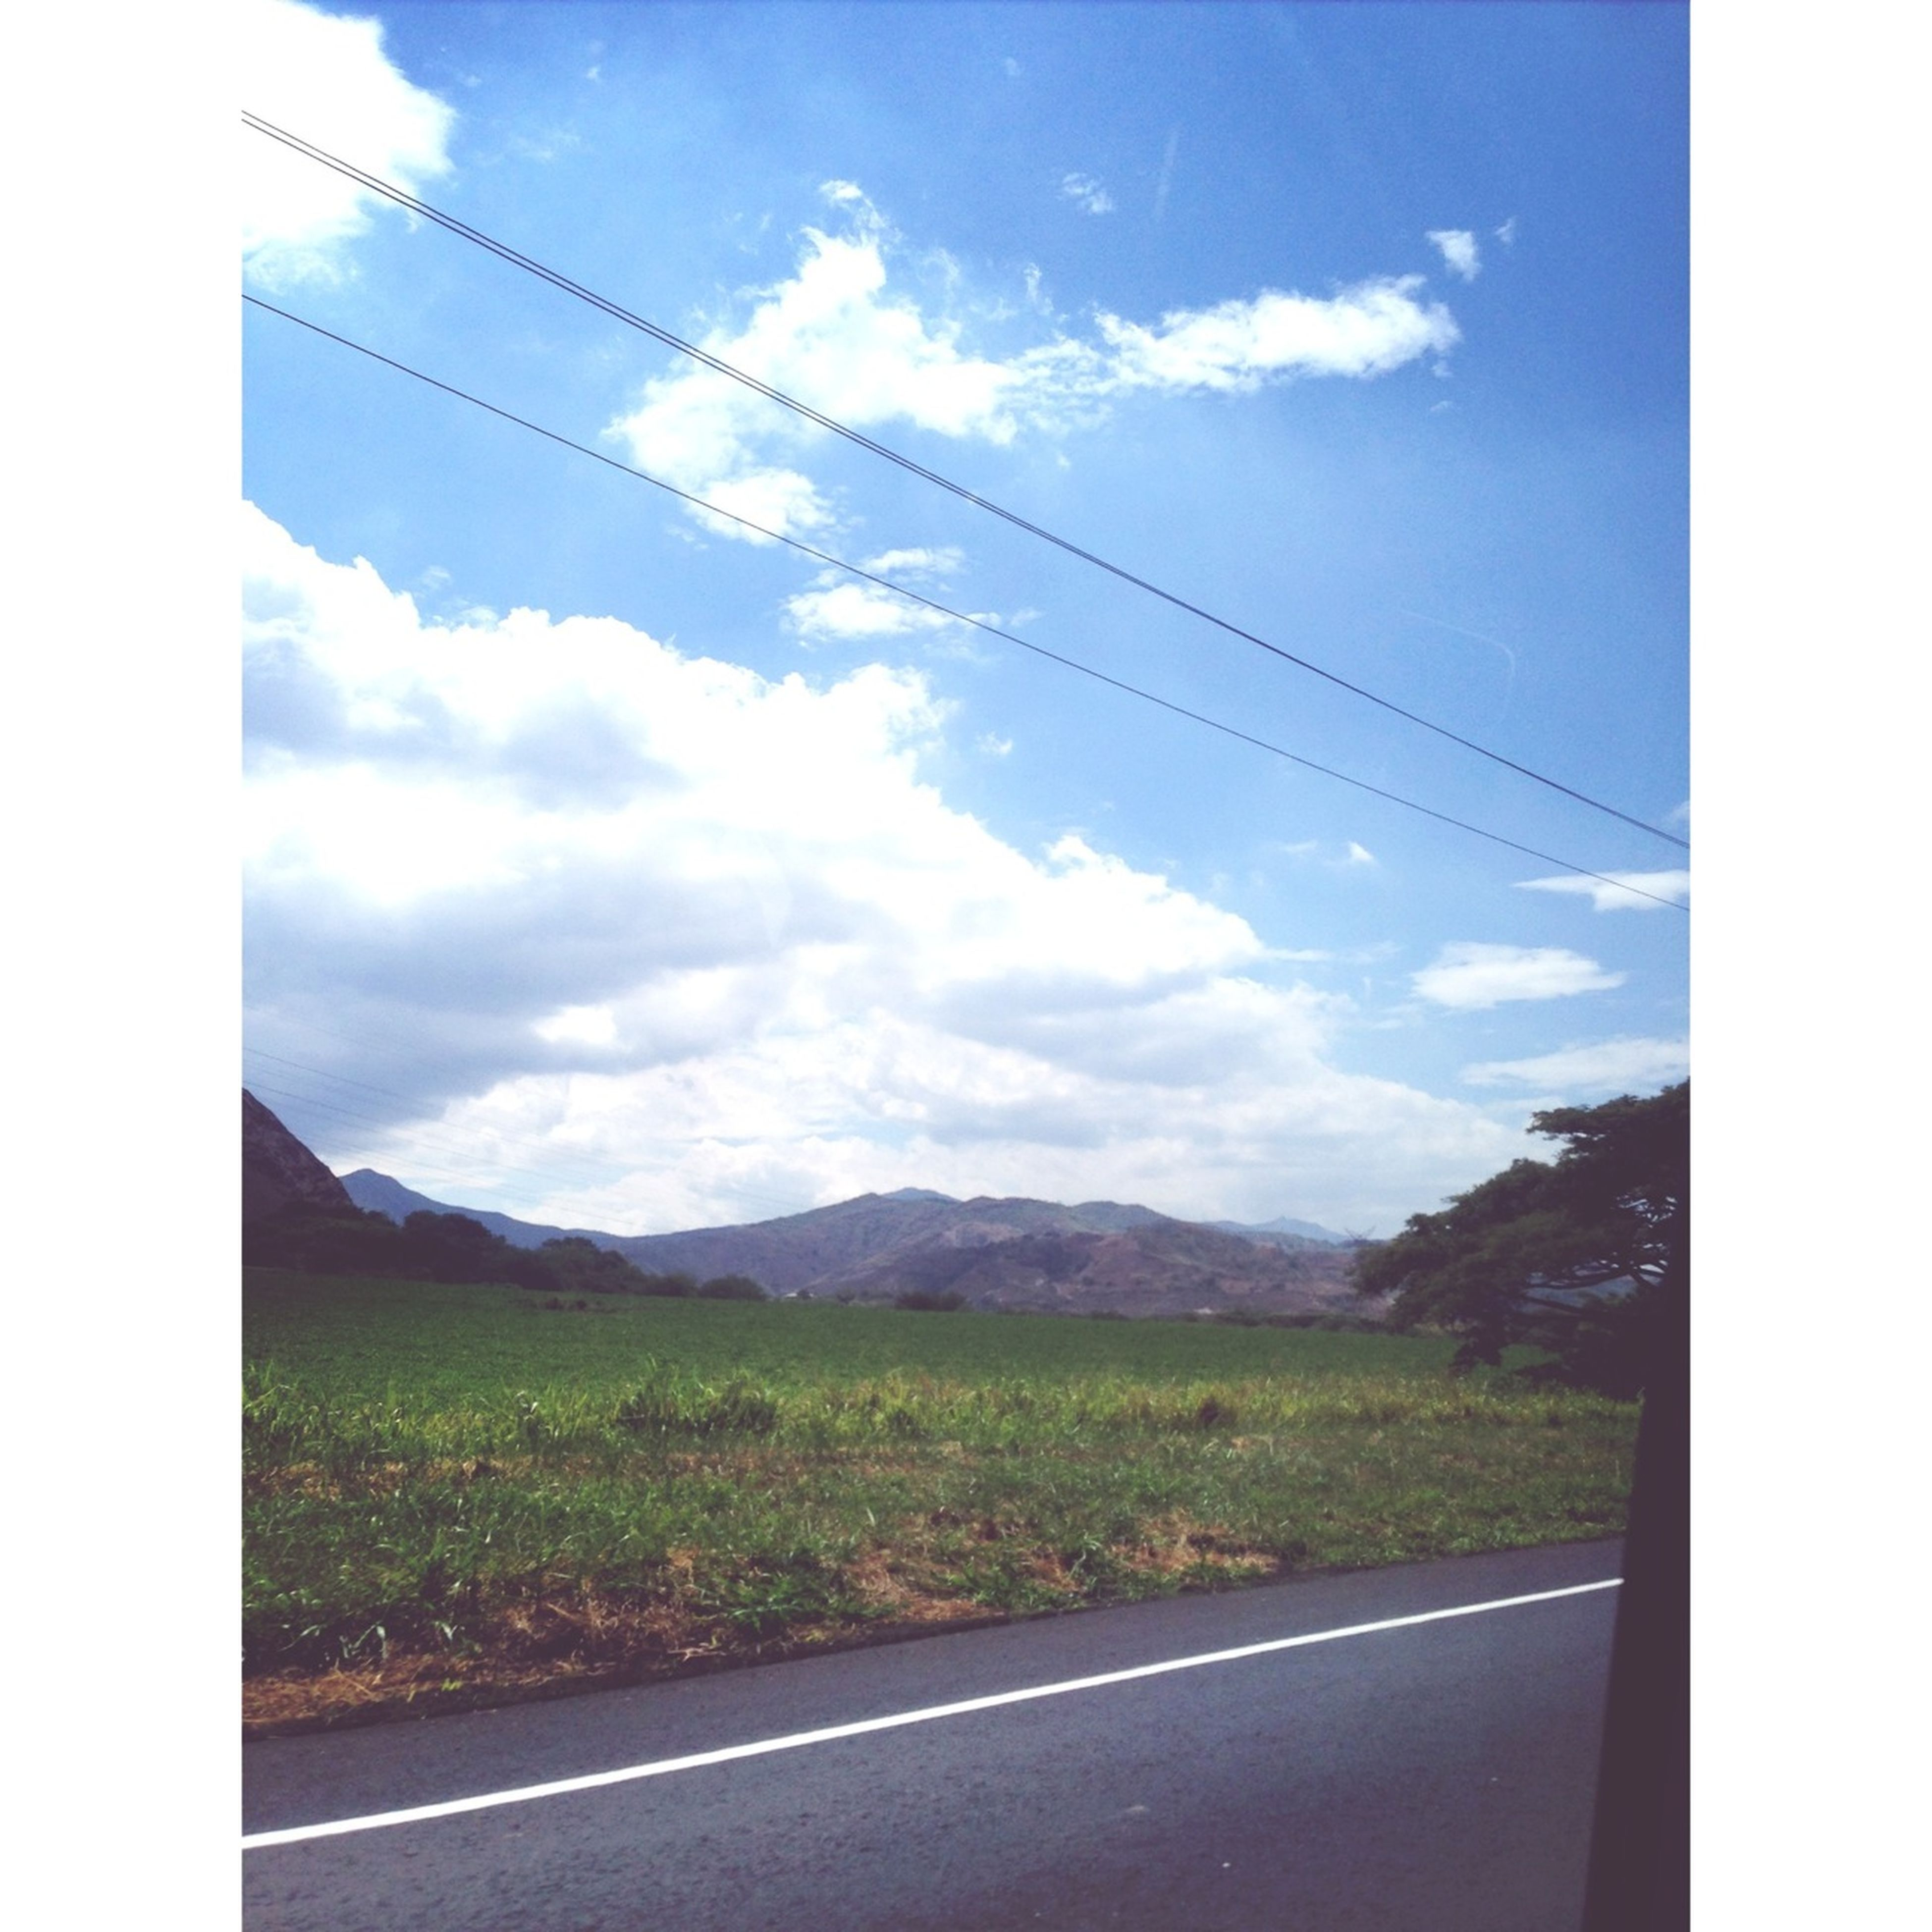 sky, mountain, transportation, transfer print, power line, road, electricity pylon, landscape, tranquil scene, scenics, tranquility, cloud - sky, mountain range, cloud, country road, nature, beauty in nature, power supply, cable, auto post production filter